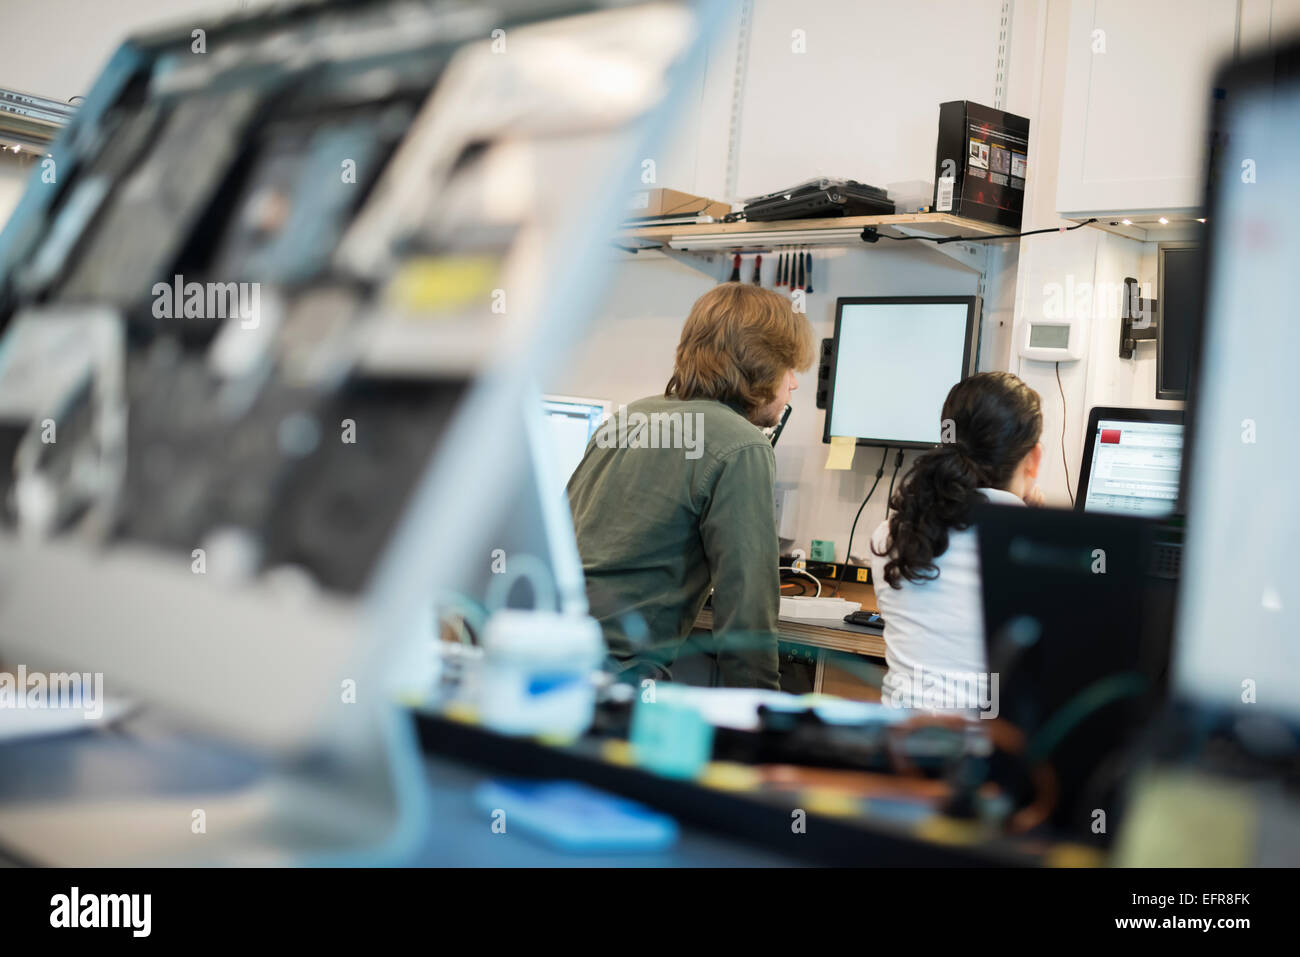 Computer Repair Shop. Two people seated using screens, and computer monitors in various stages of repair. - Stock Image